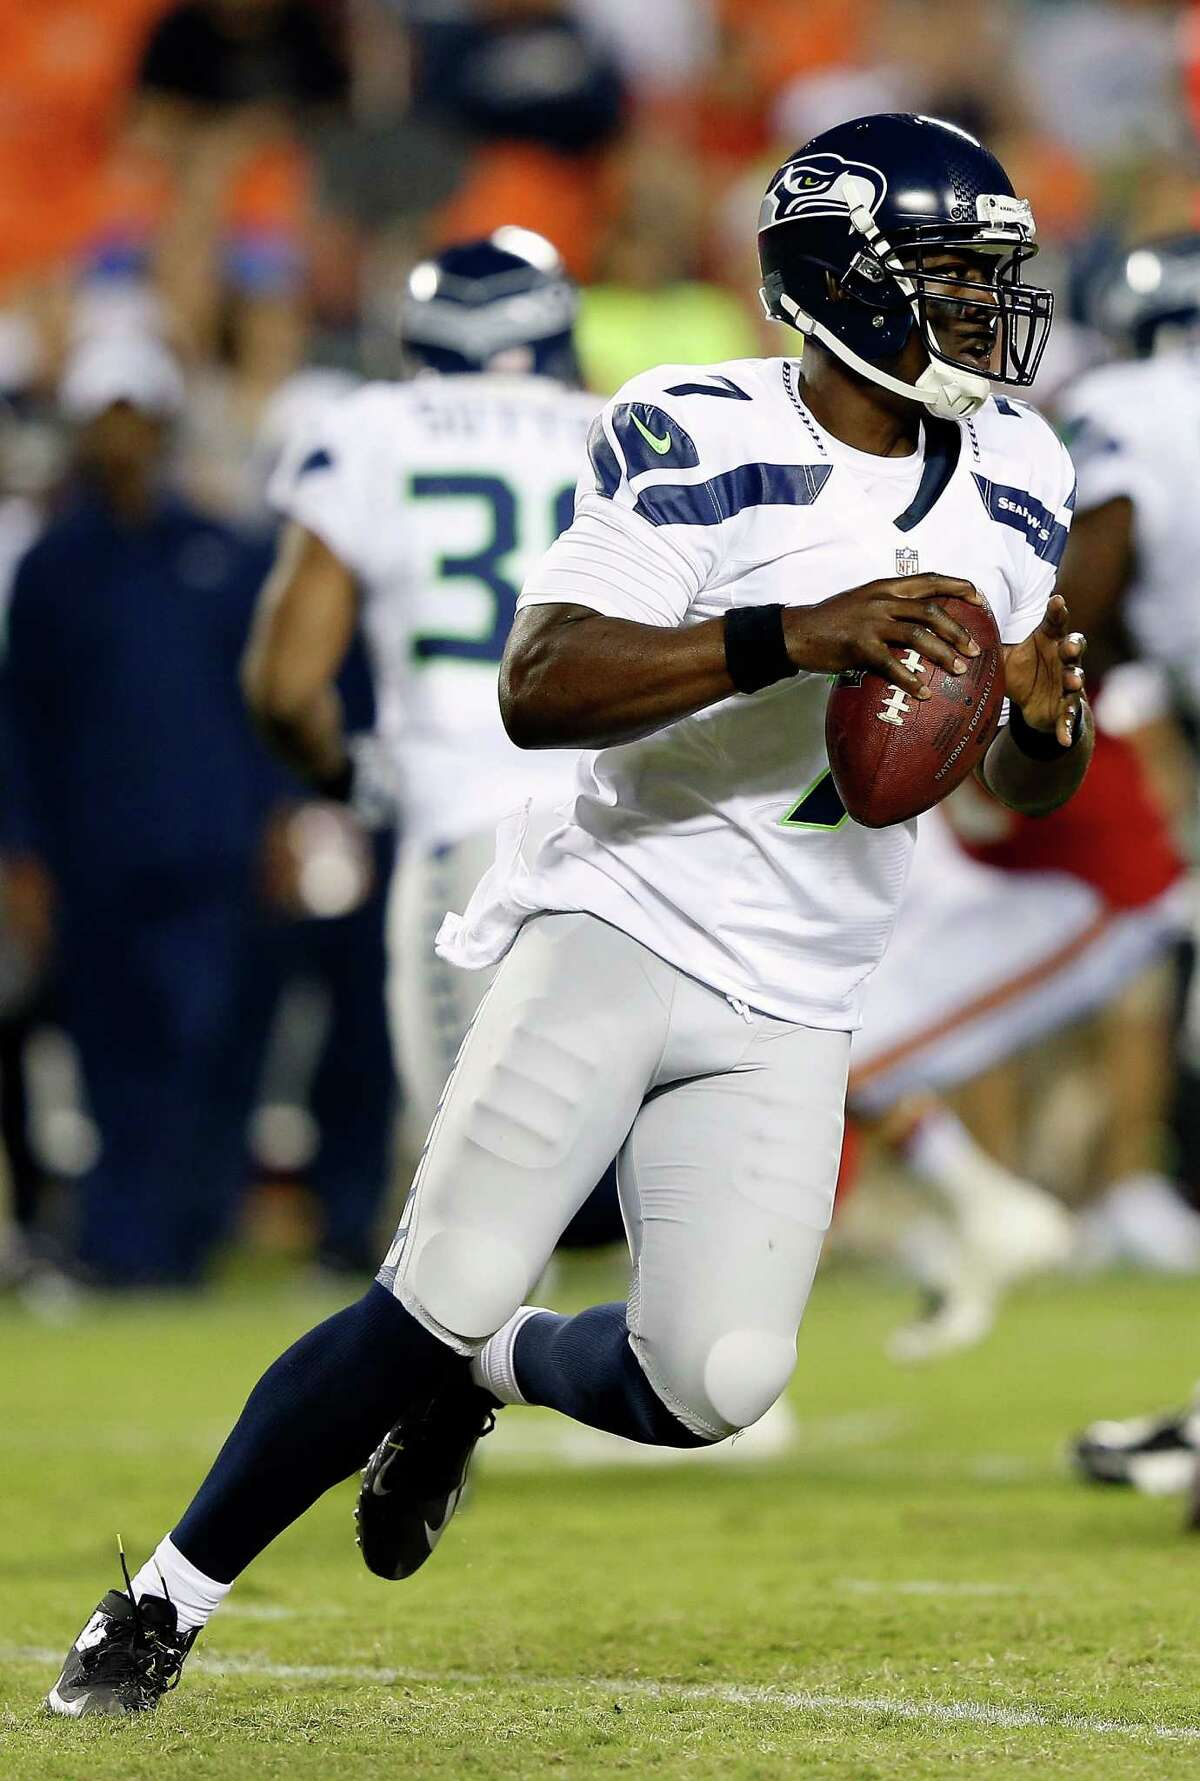 KANSAS CITY, MO - AUGUST 24: Quarterback Tarvaris Jackson #7 of the Seattle Seahawks rolls out during the NFL preseason game against the Kansas City Chiefs at Arrowhead Stadium on August 24, 2012 in Kansas City, Missouri.